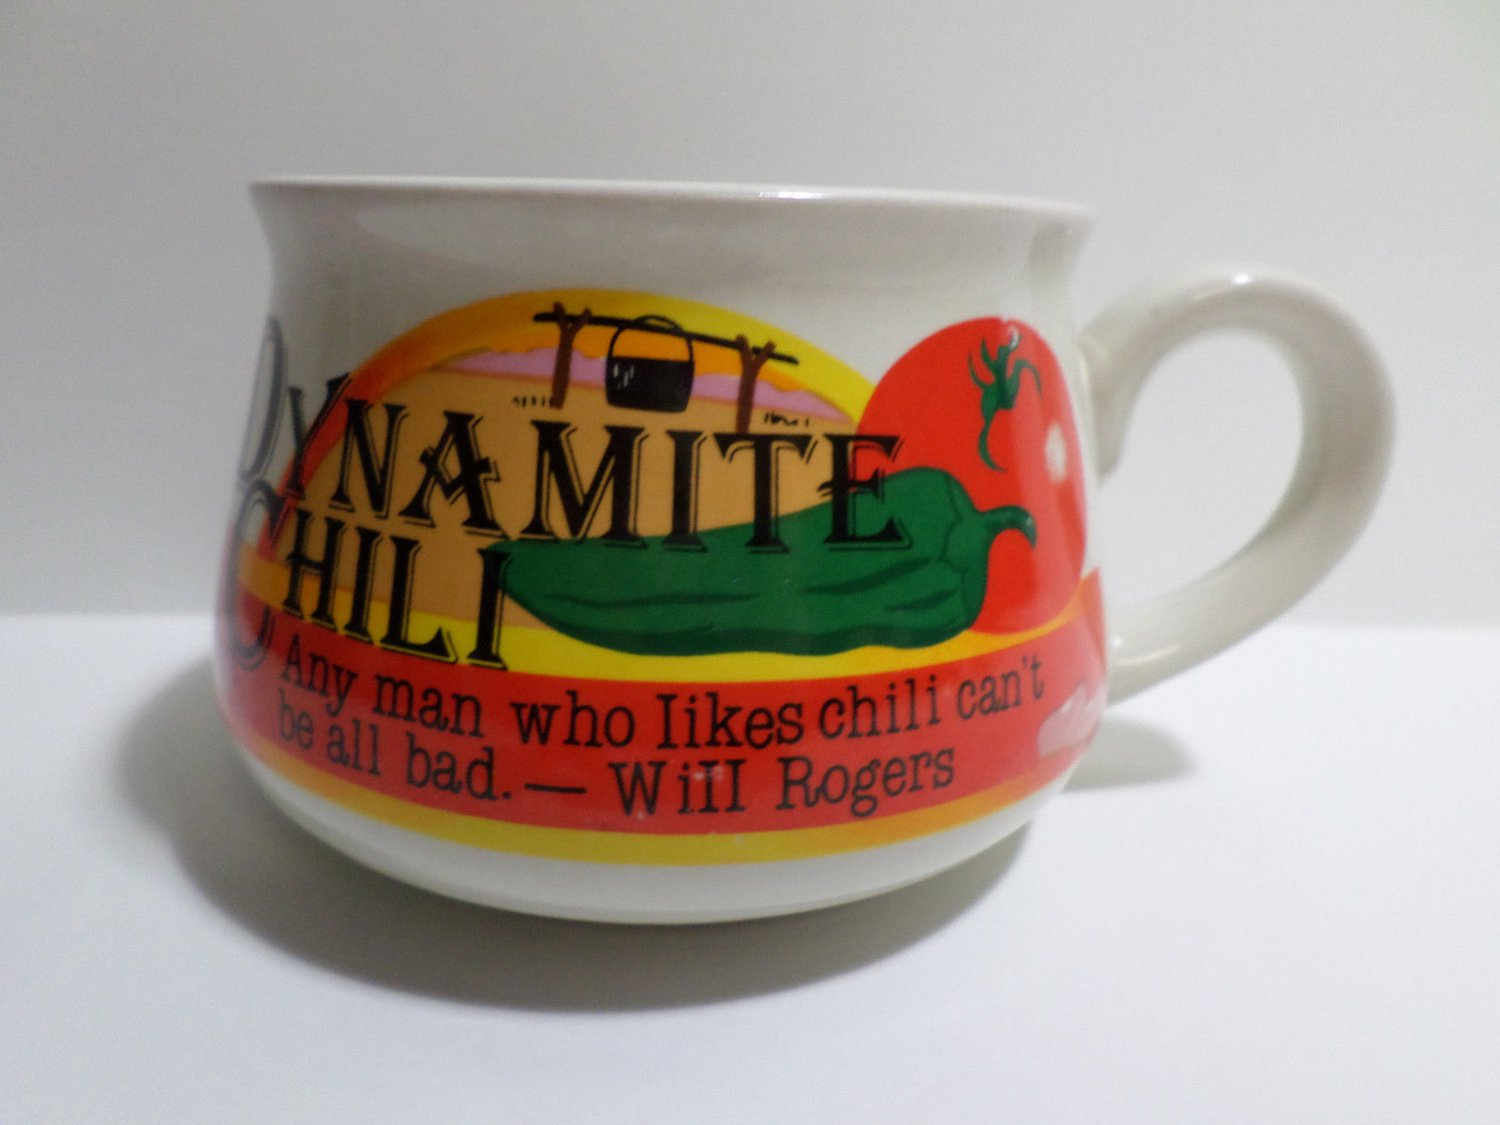 Collector Coffee Mug Dynamite Chili Any Man Who Likes Chili Can't be all Bad